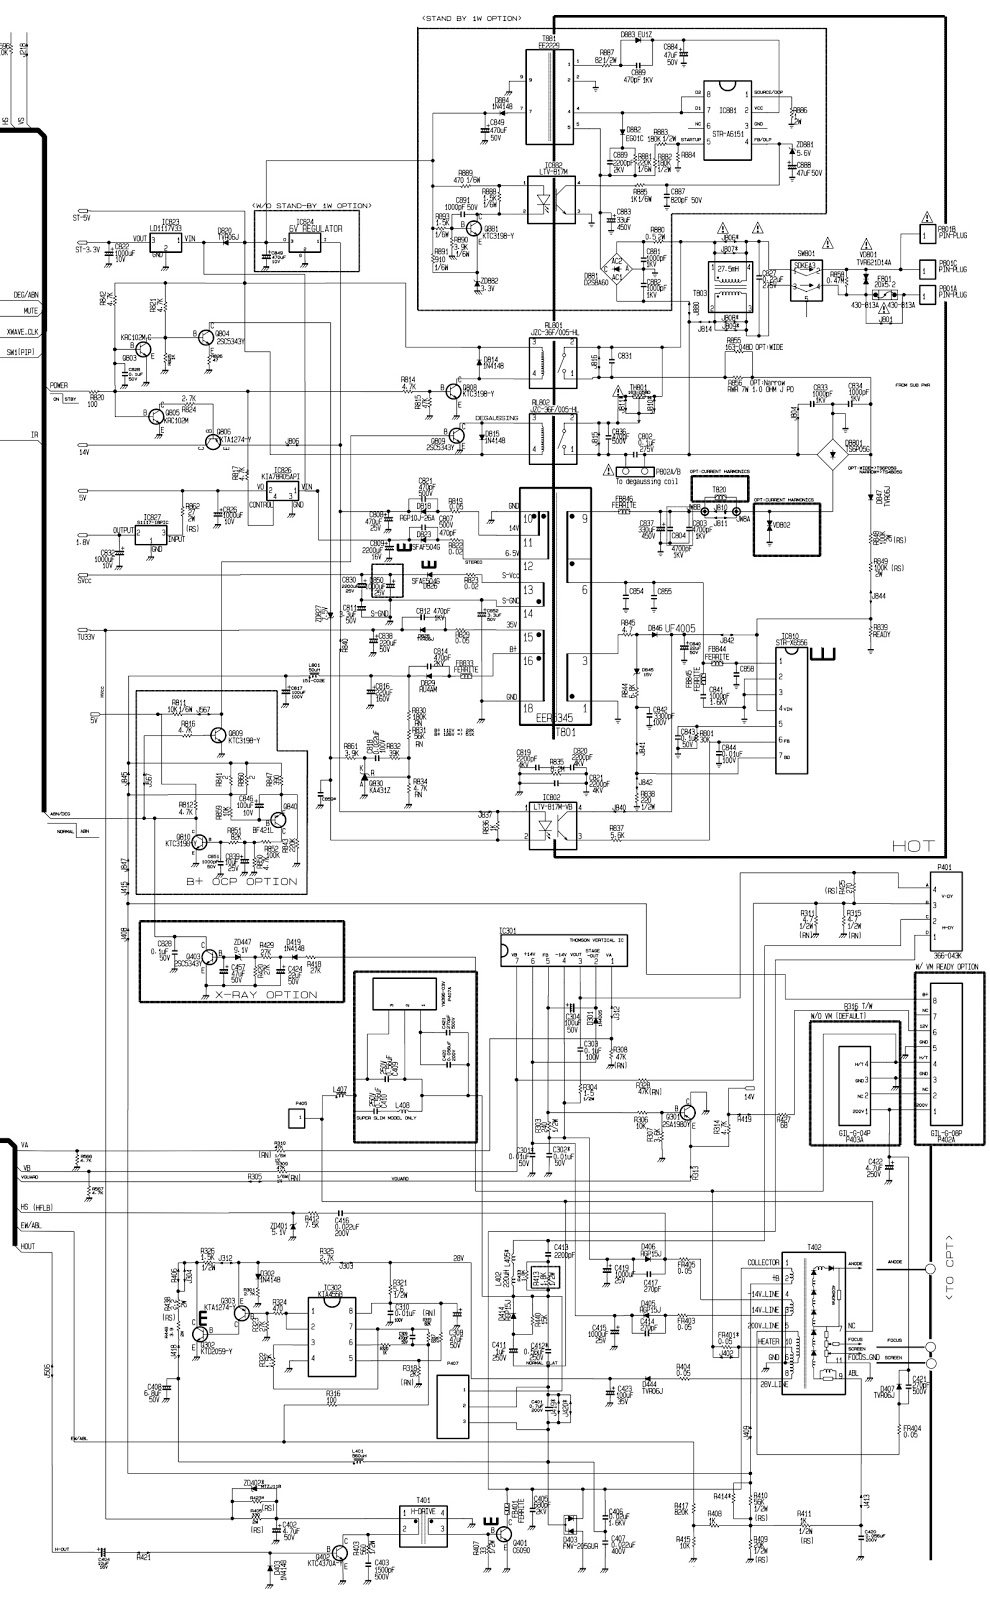 medium resolution of circuit diagram click on the schematic to magnify